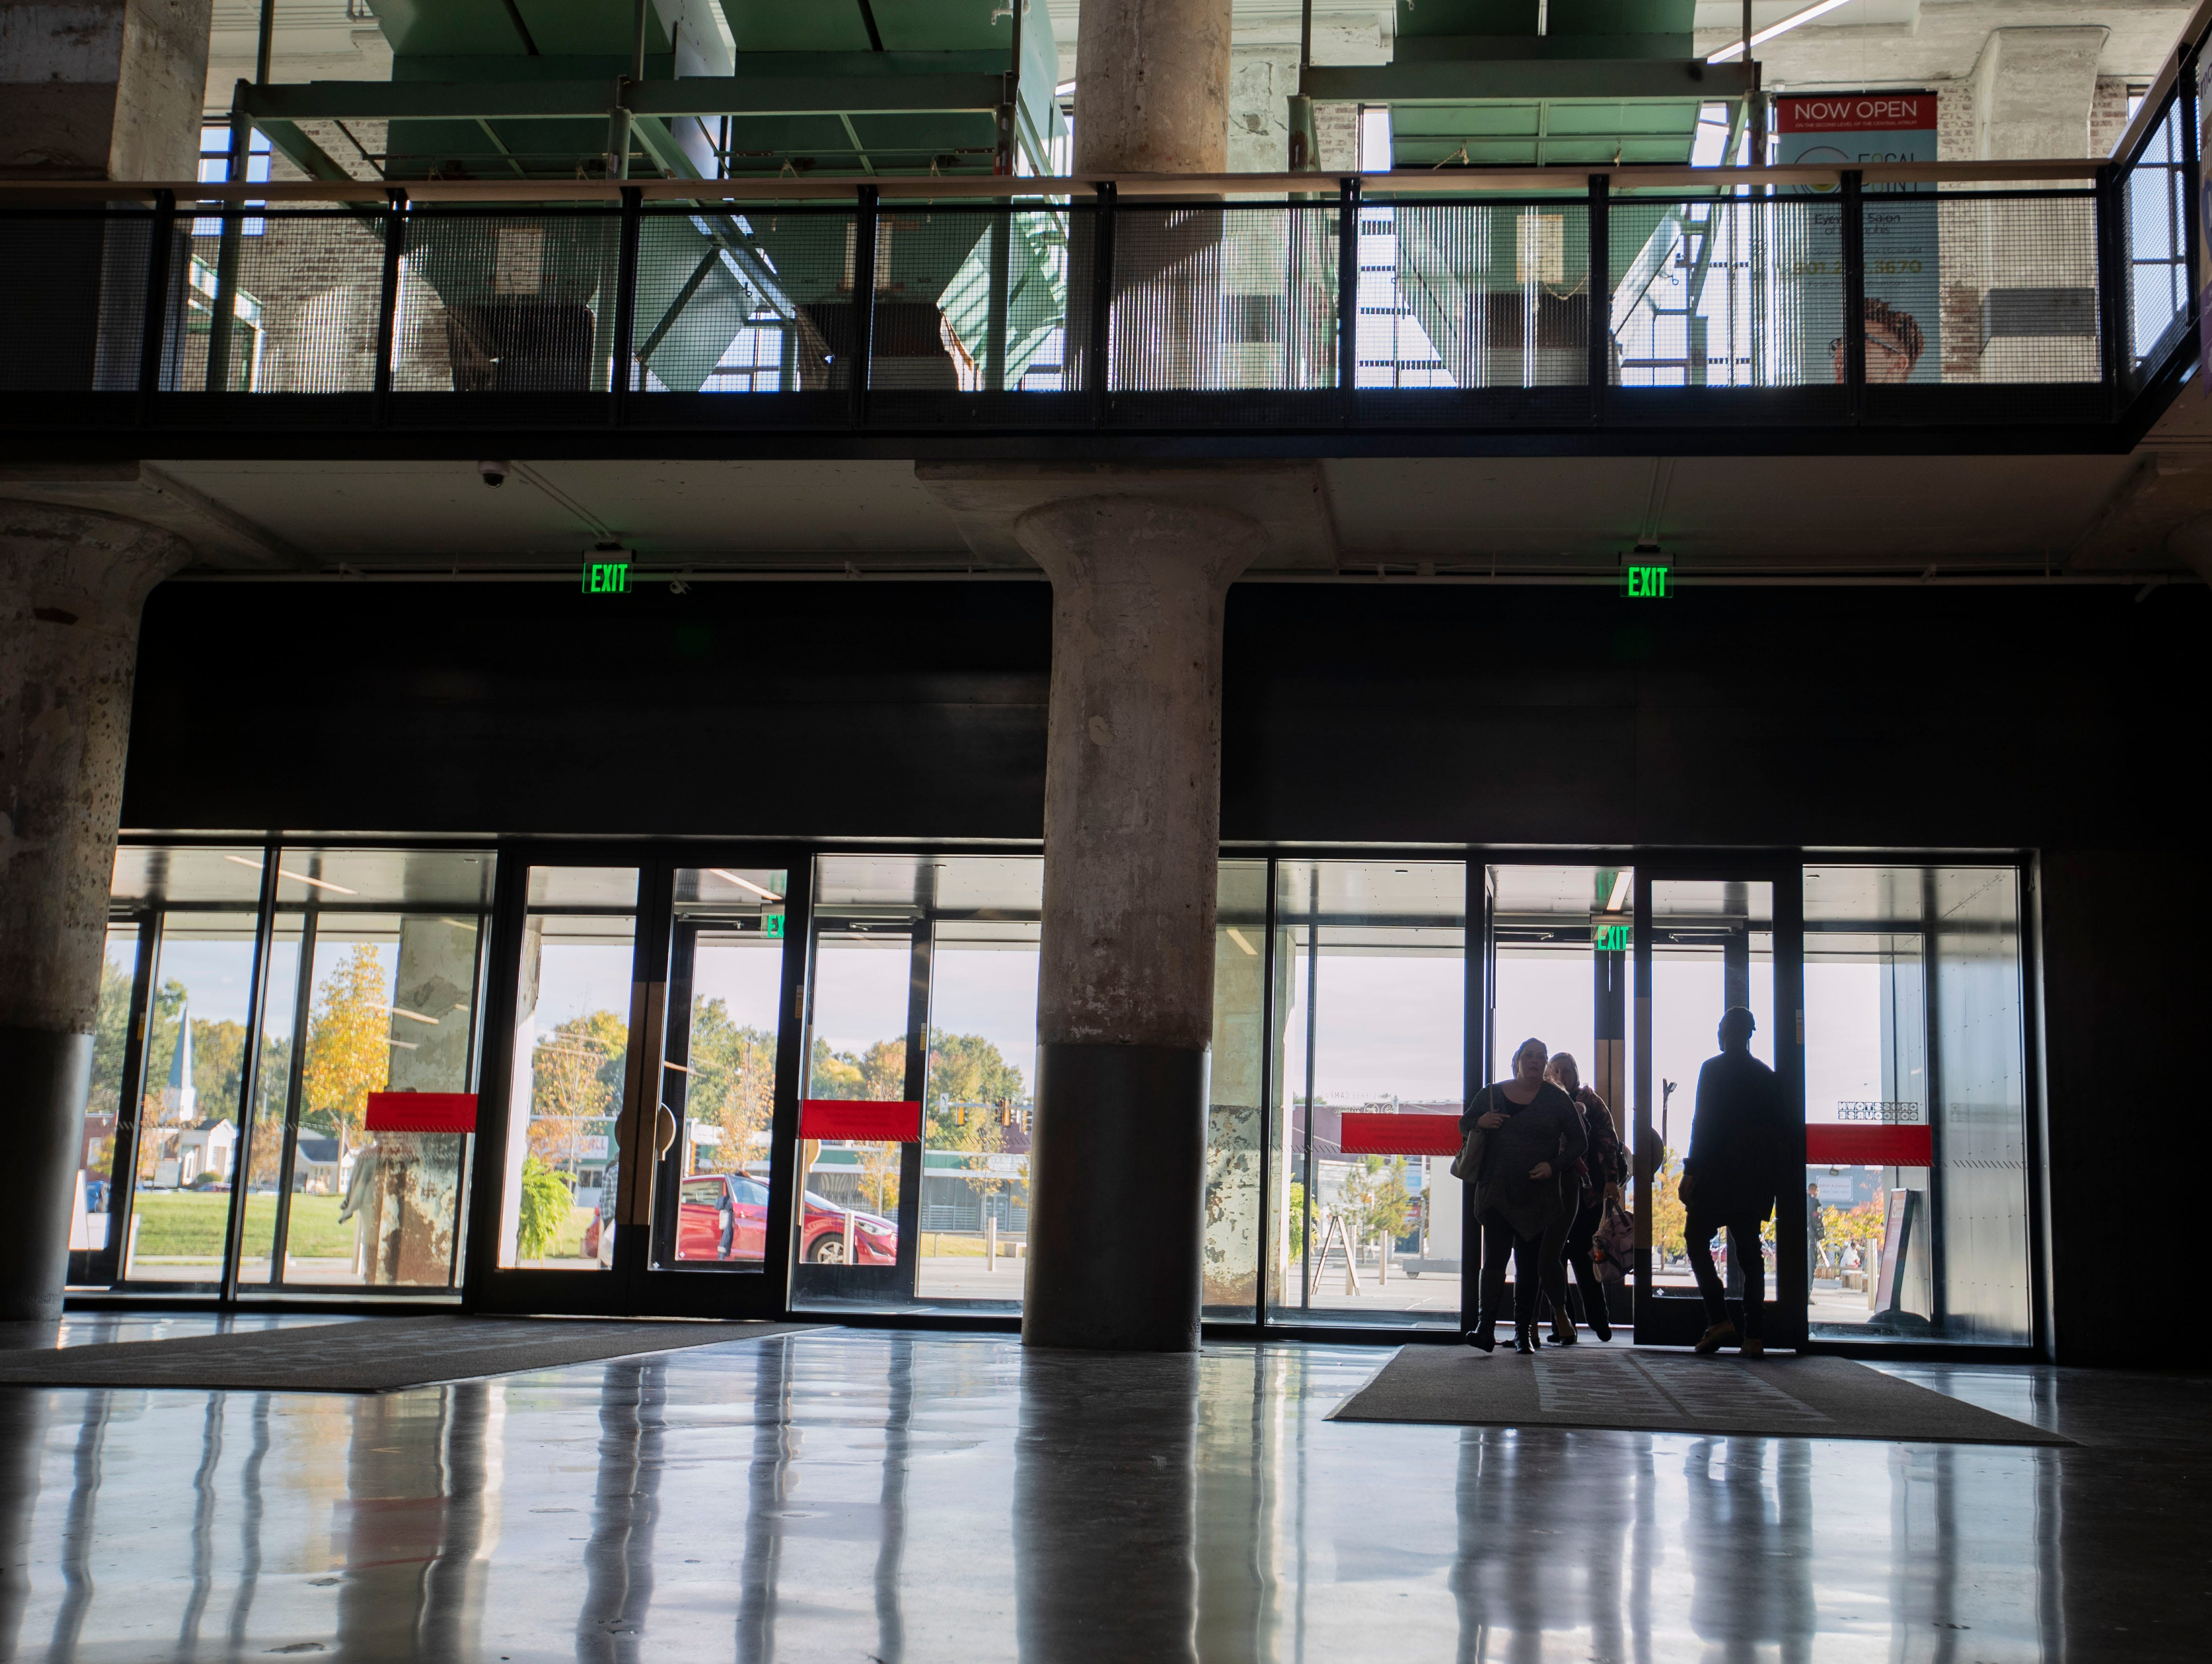 Crosstown Concourse is a 1.5 million-square-foot mixed-use space that holds a high school, apartments, office spaces, retail stores, a pharmacy, coffee shop, art galleries and much more.